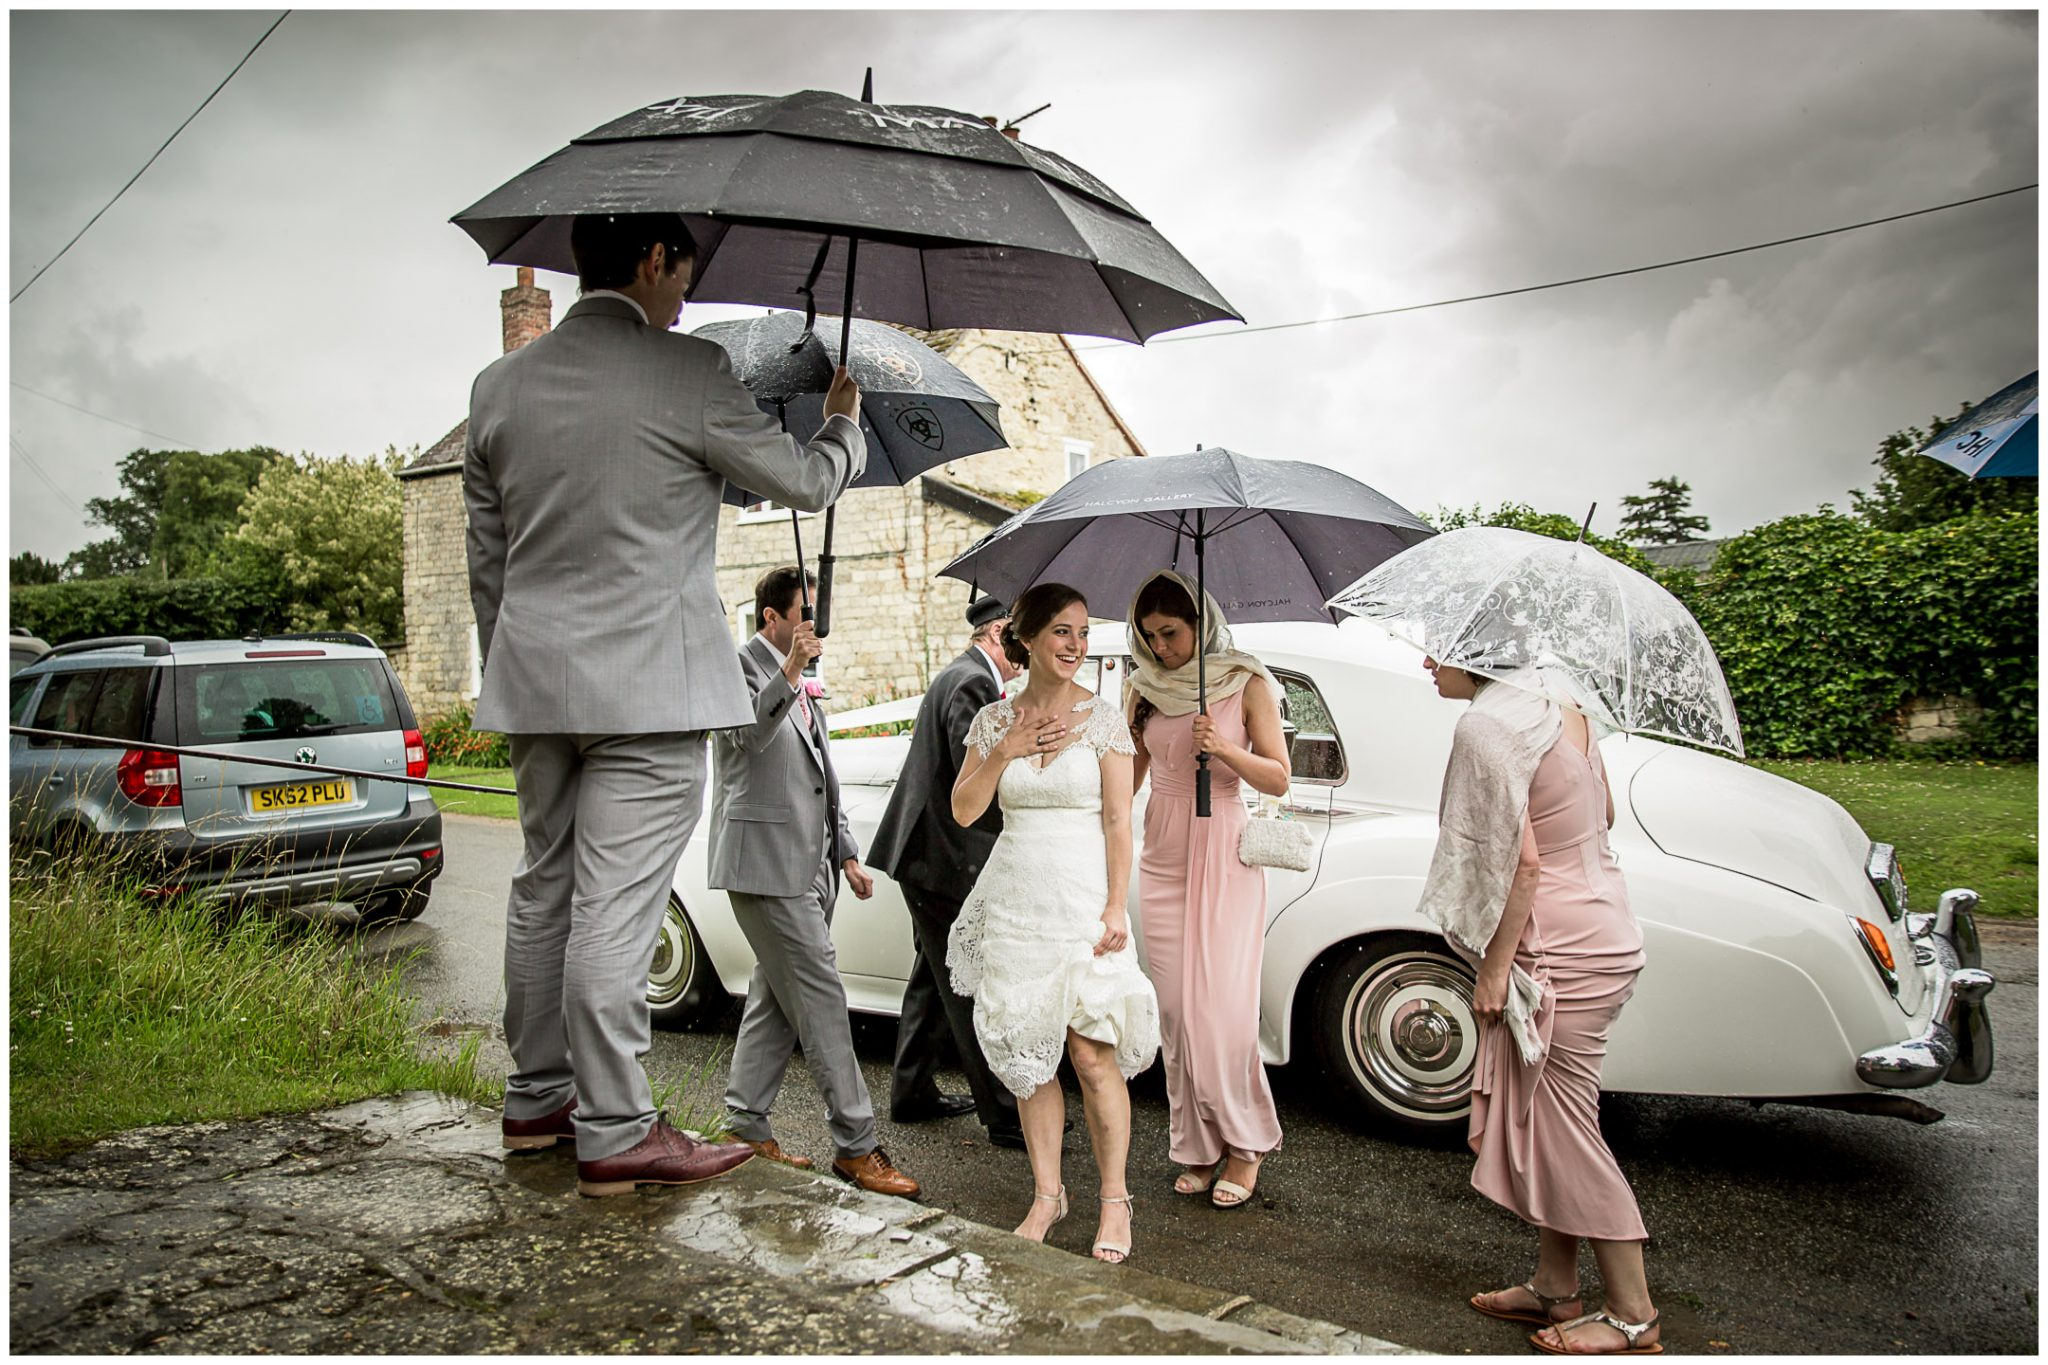 The bride steps out of the car sheltered by a canopy of umbrellas